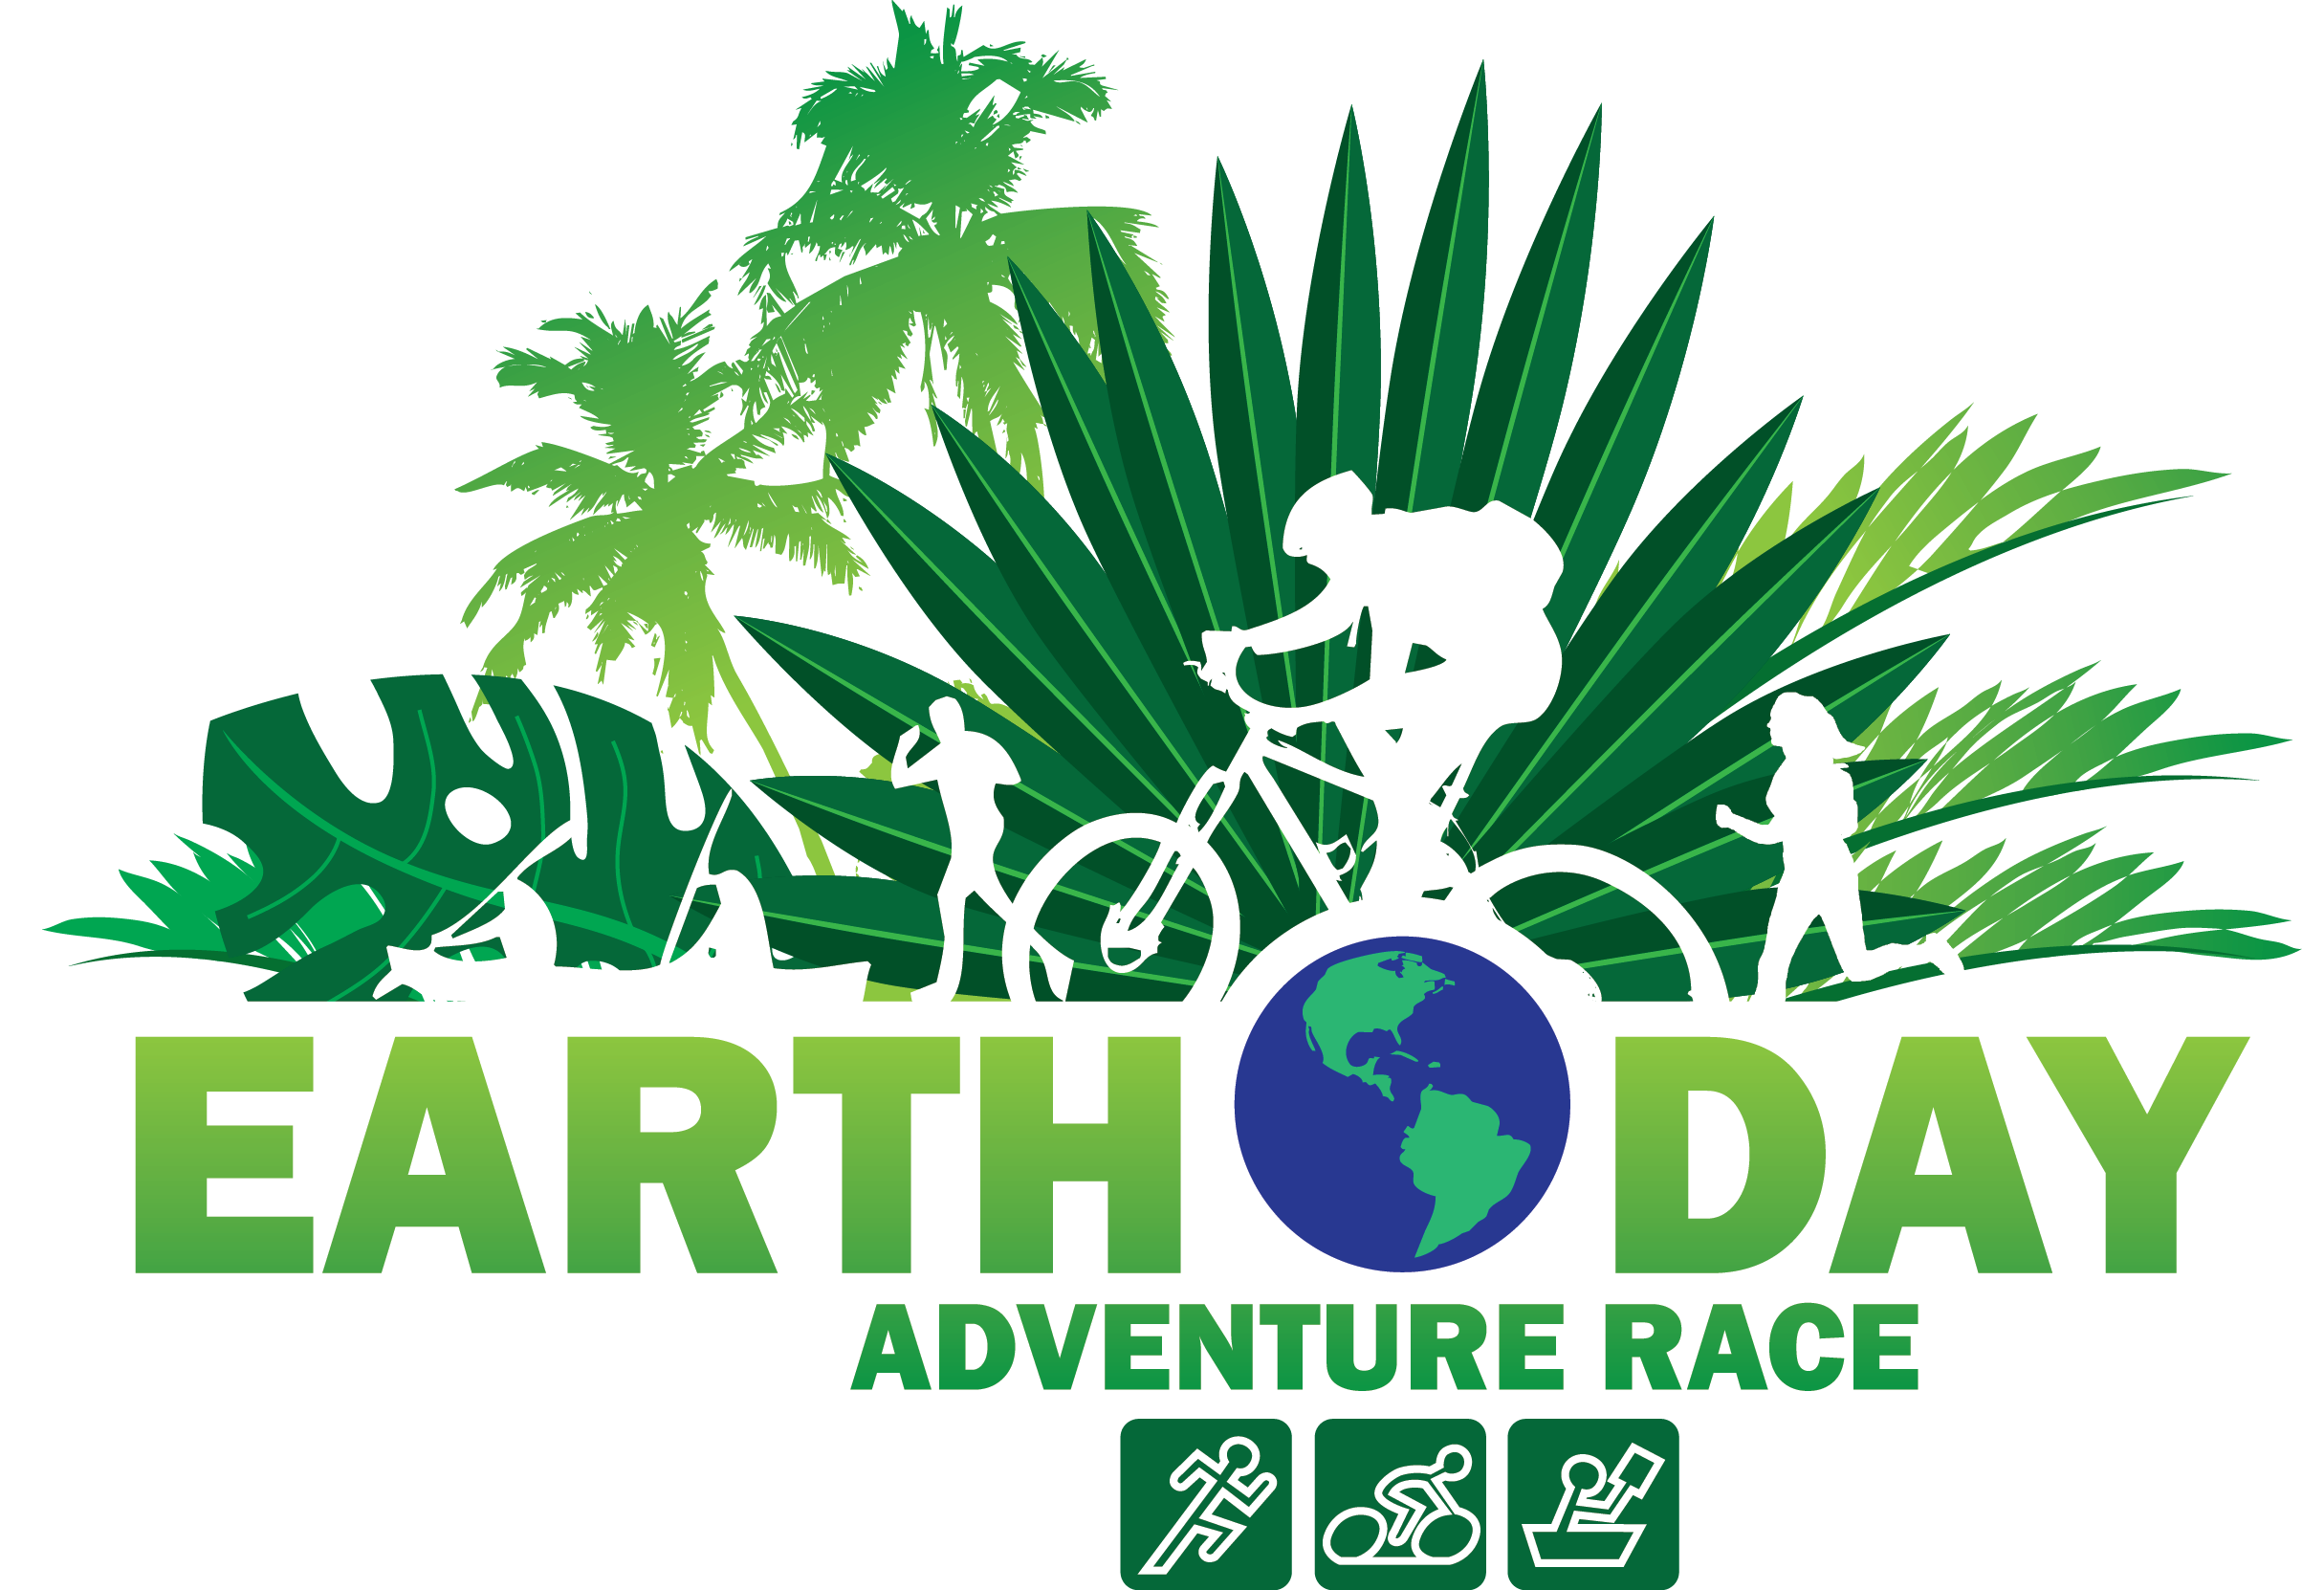 Clipart Free Images Earth Day Best image #40637